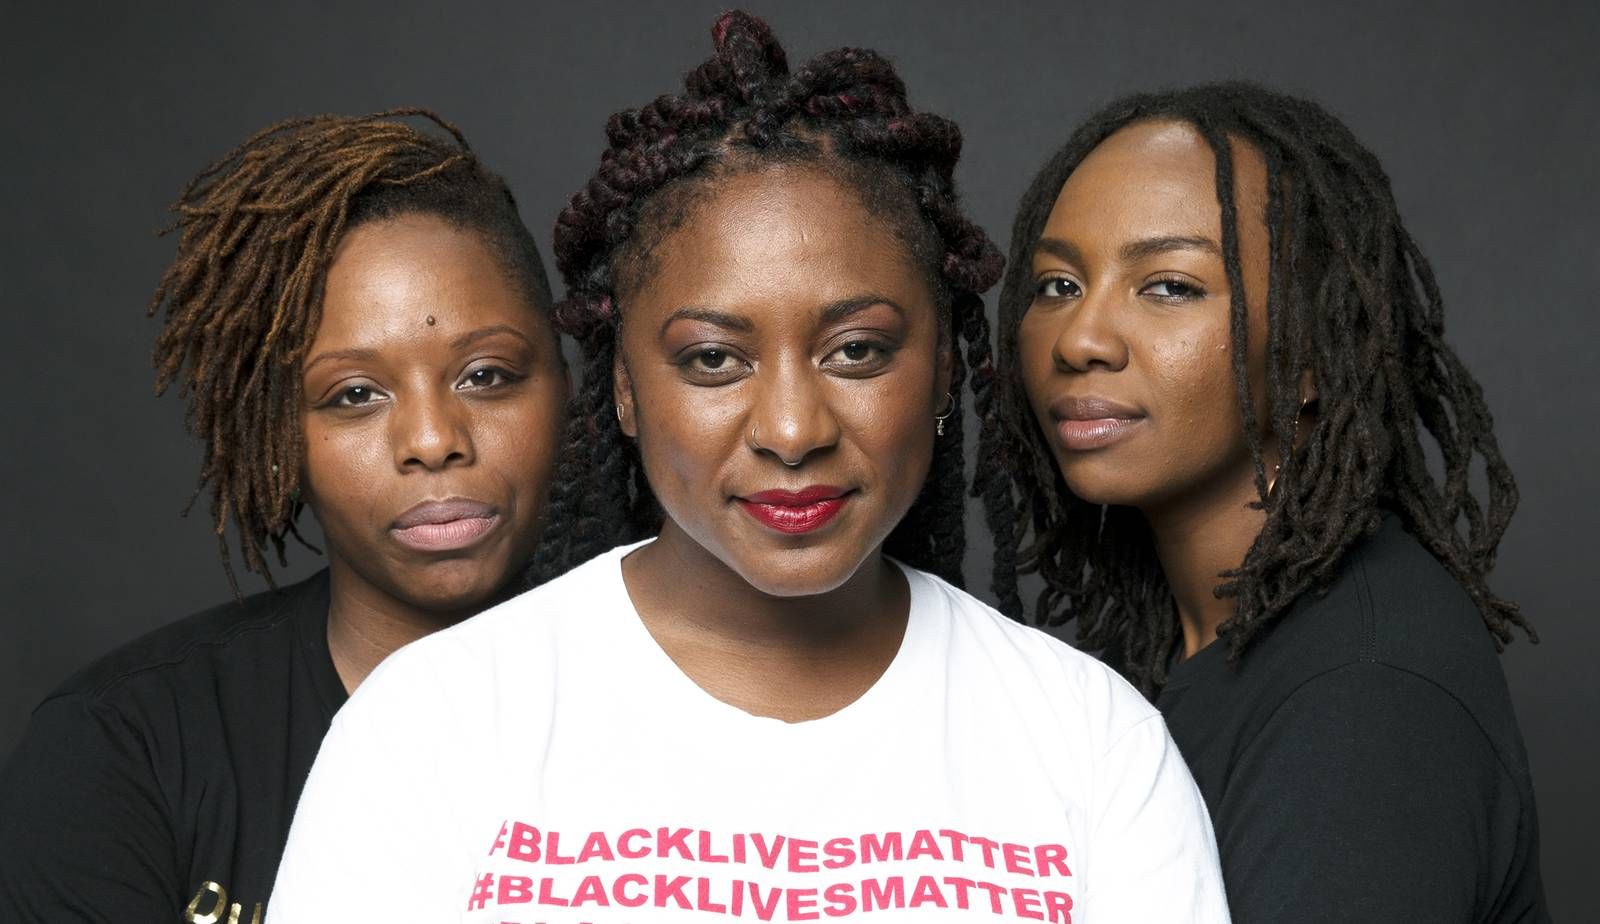 Alicia Garza, Patrisse Cullors, and Opal Tometi, Co-Founders of Black Lives Matter